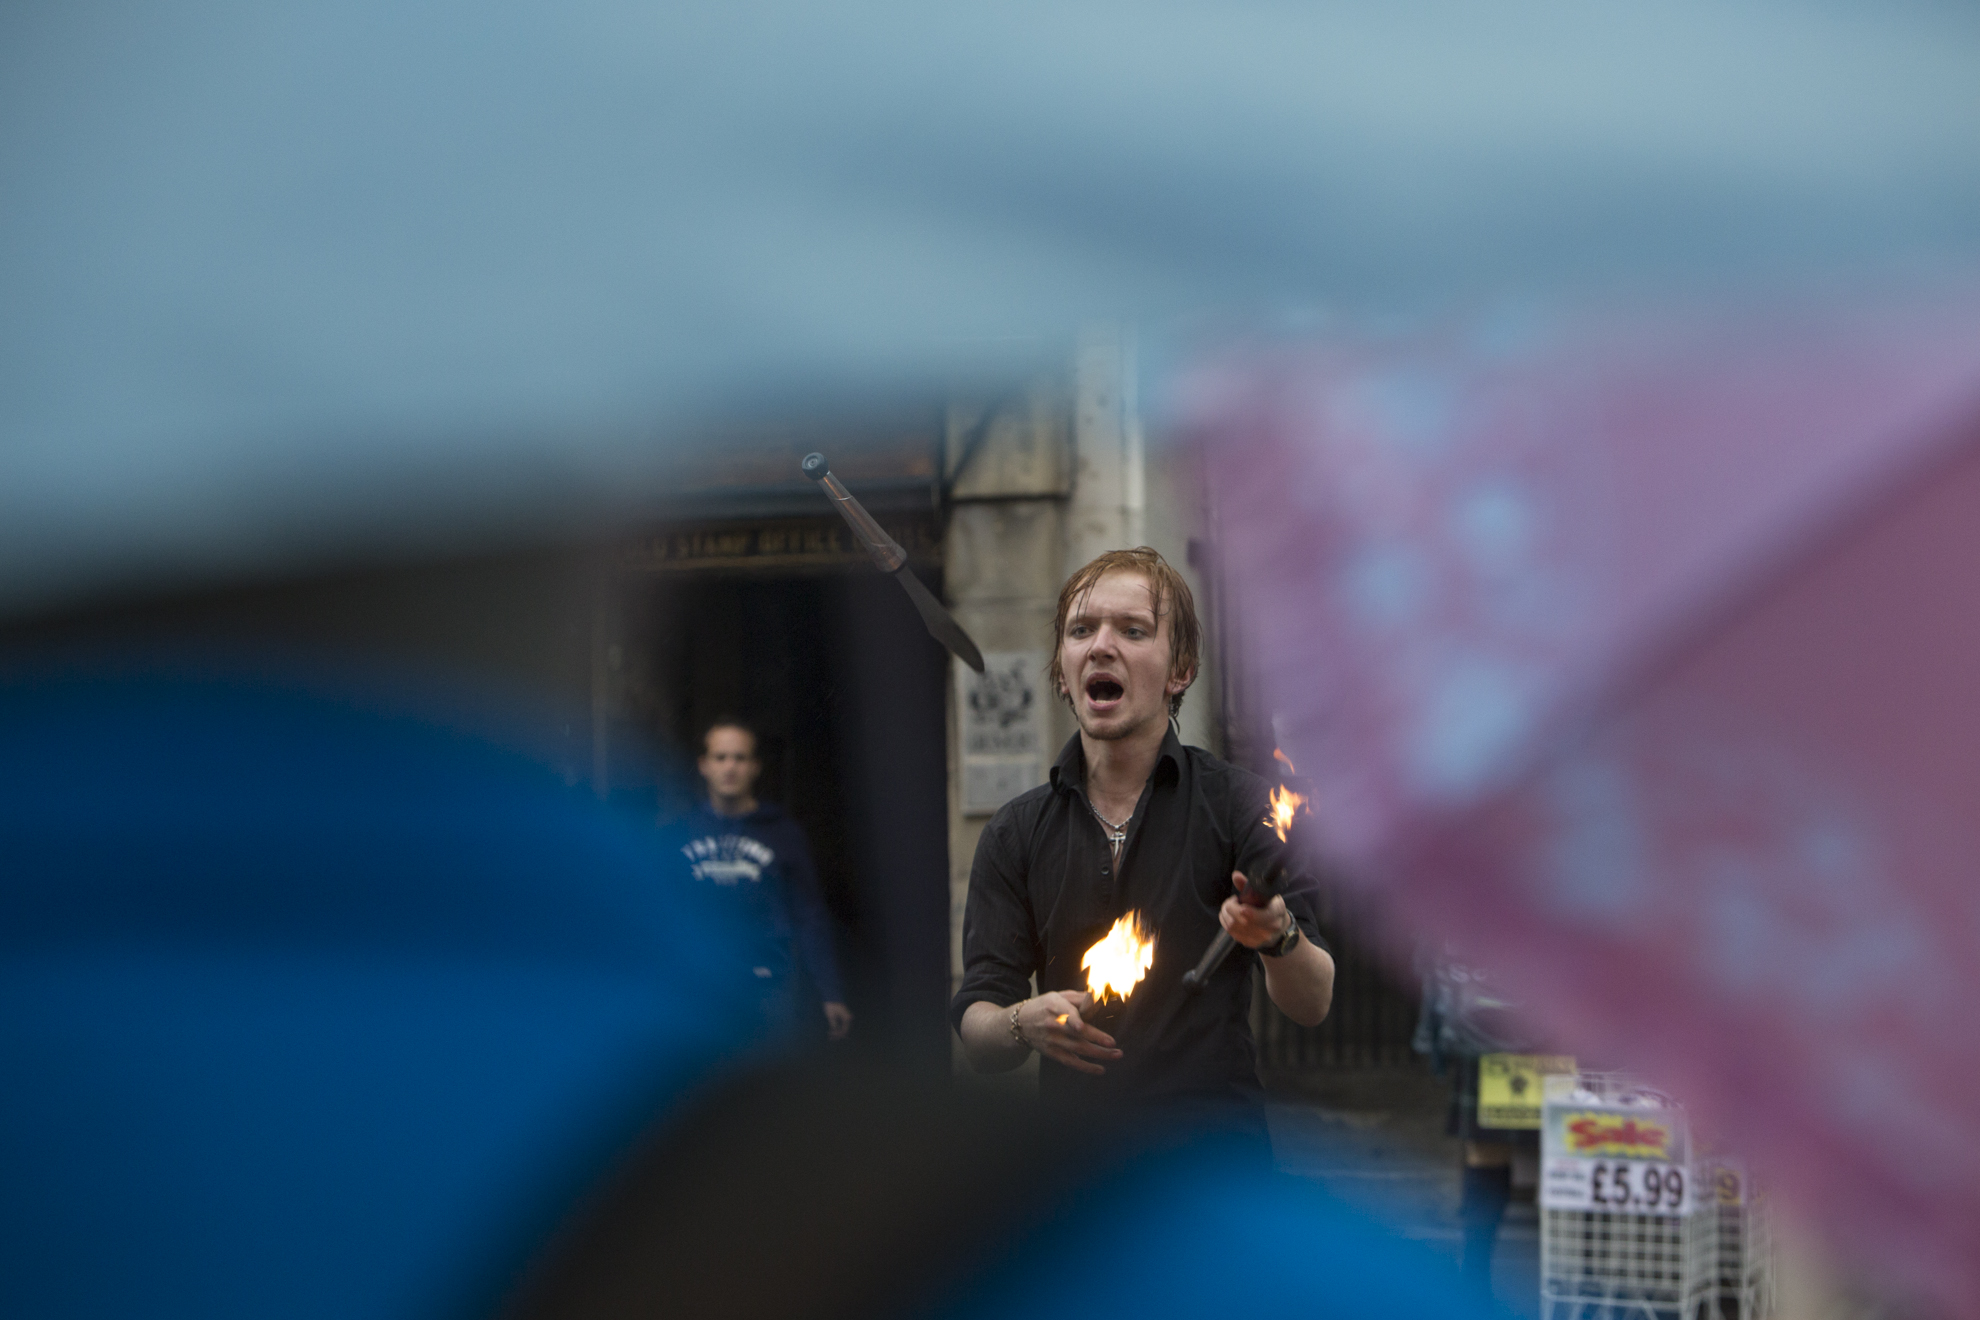 Tommy Everson performs in front of a crowd in the rain during the Edinburgh Festival of the Fringe in Edinburgh, Scotland.